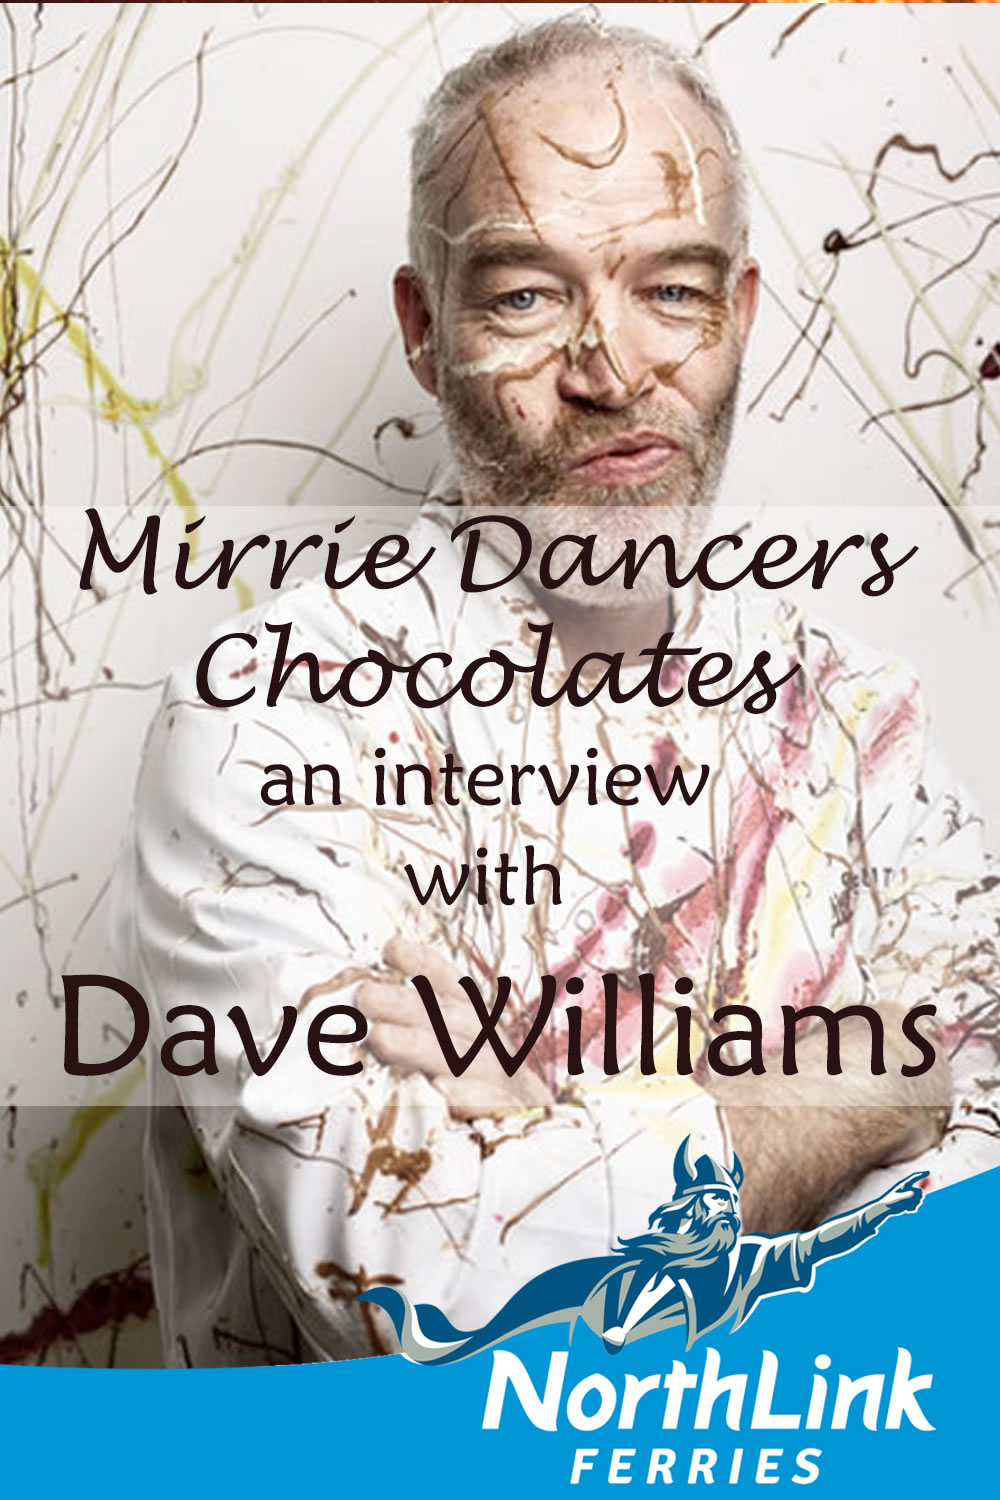 Mirrie Dancers Chocolates - an interview with Dave Williams